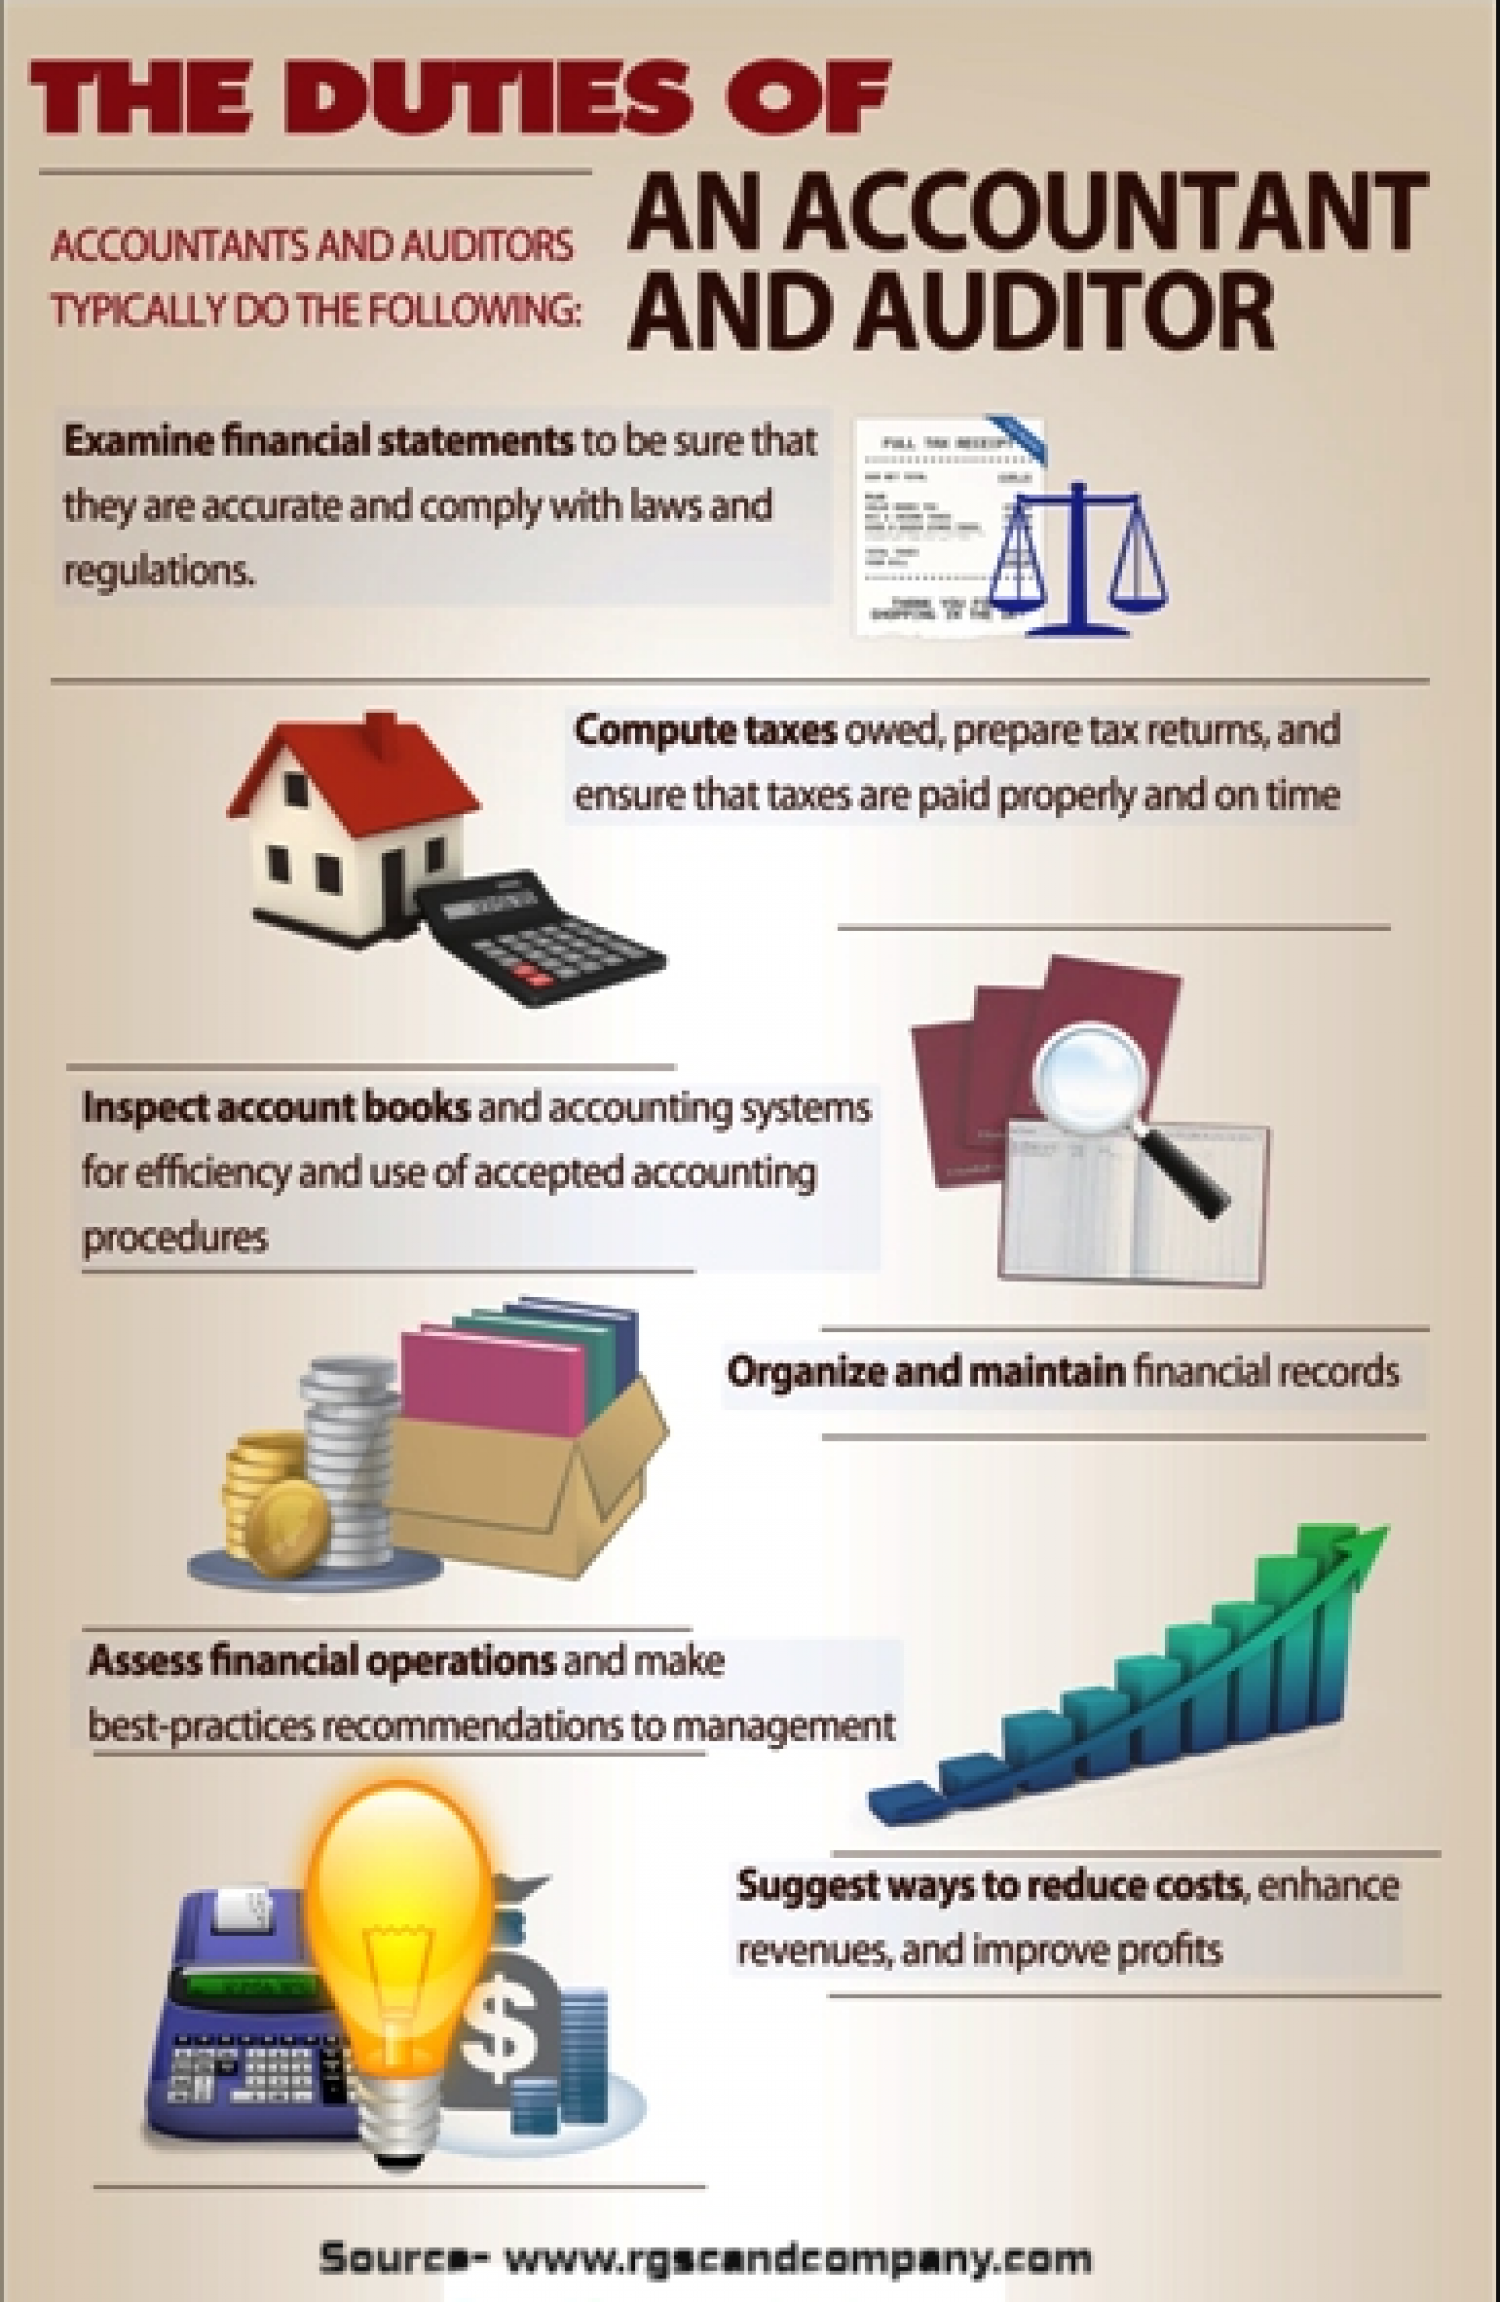 The duties of an accountant and auditor infographic the duties of an accountant and auditor infographic accountability holding yourself accountable accountability quotes 1betcityfo Image collections